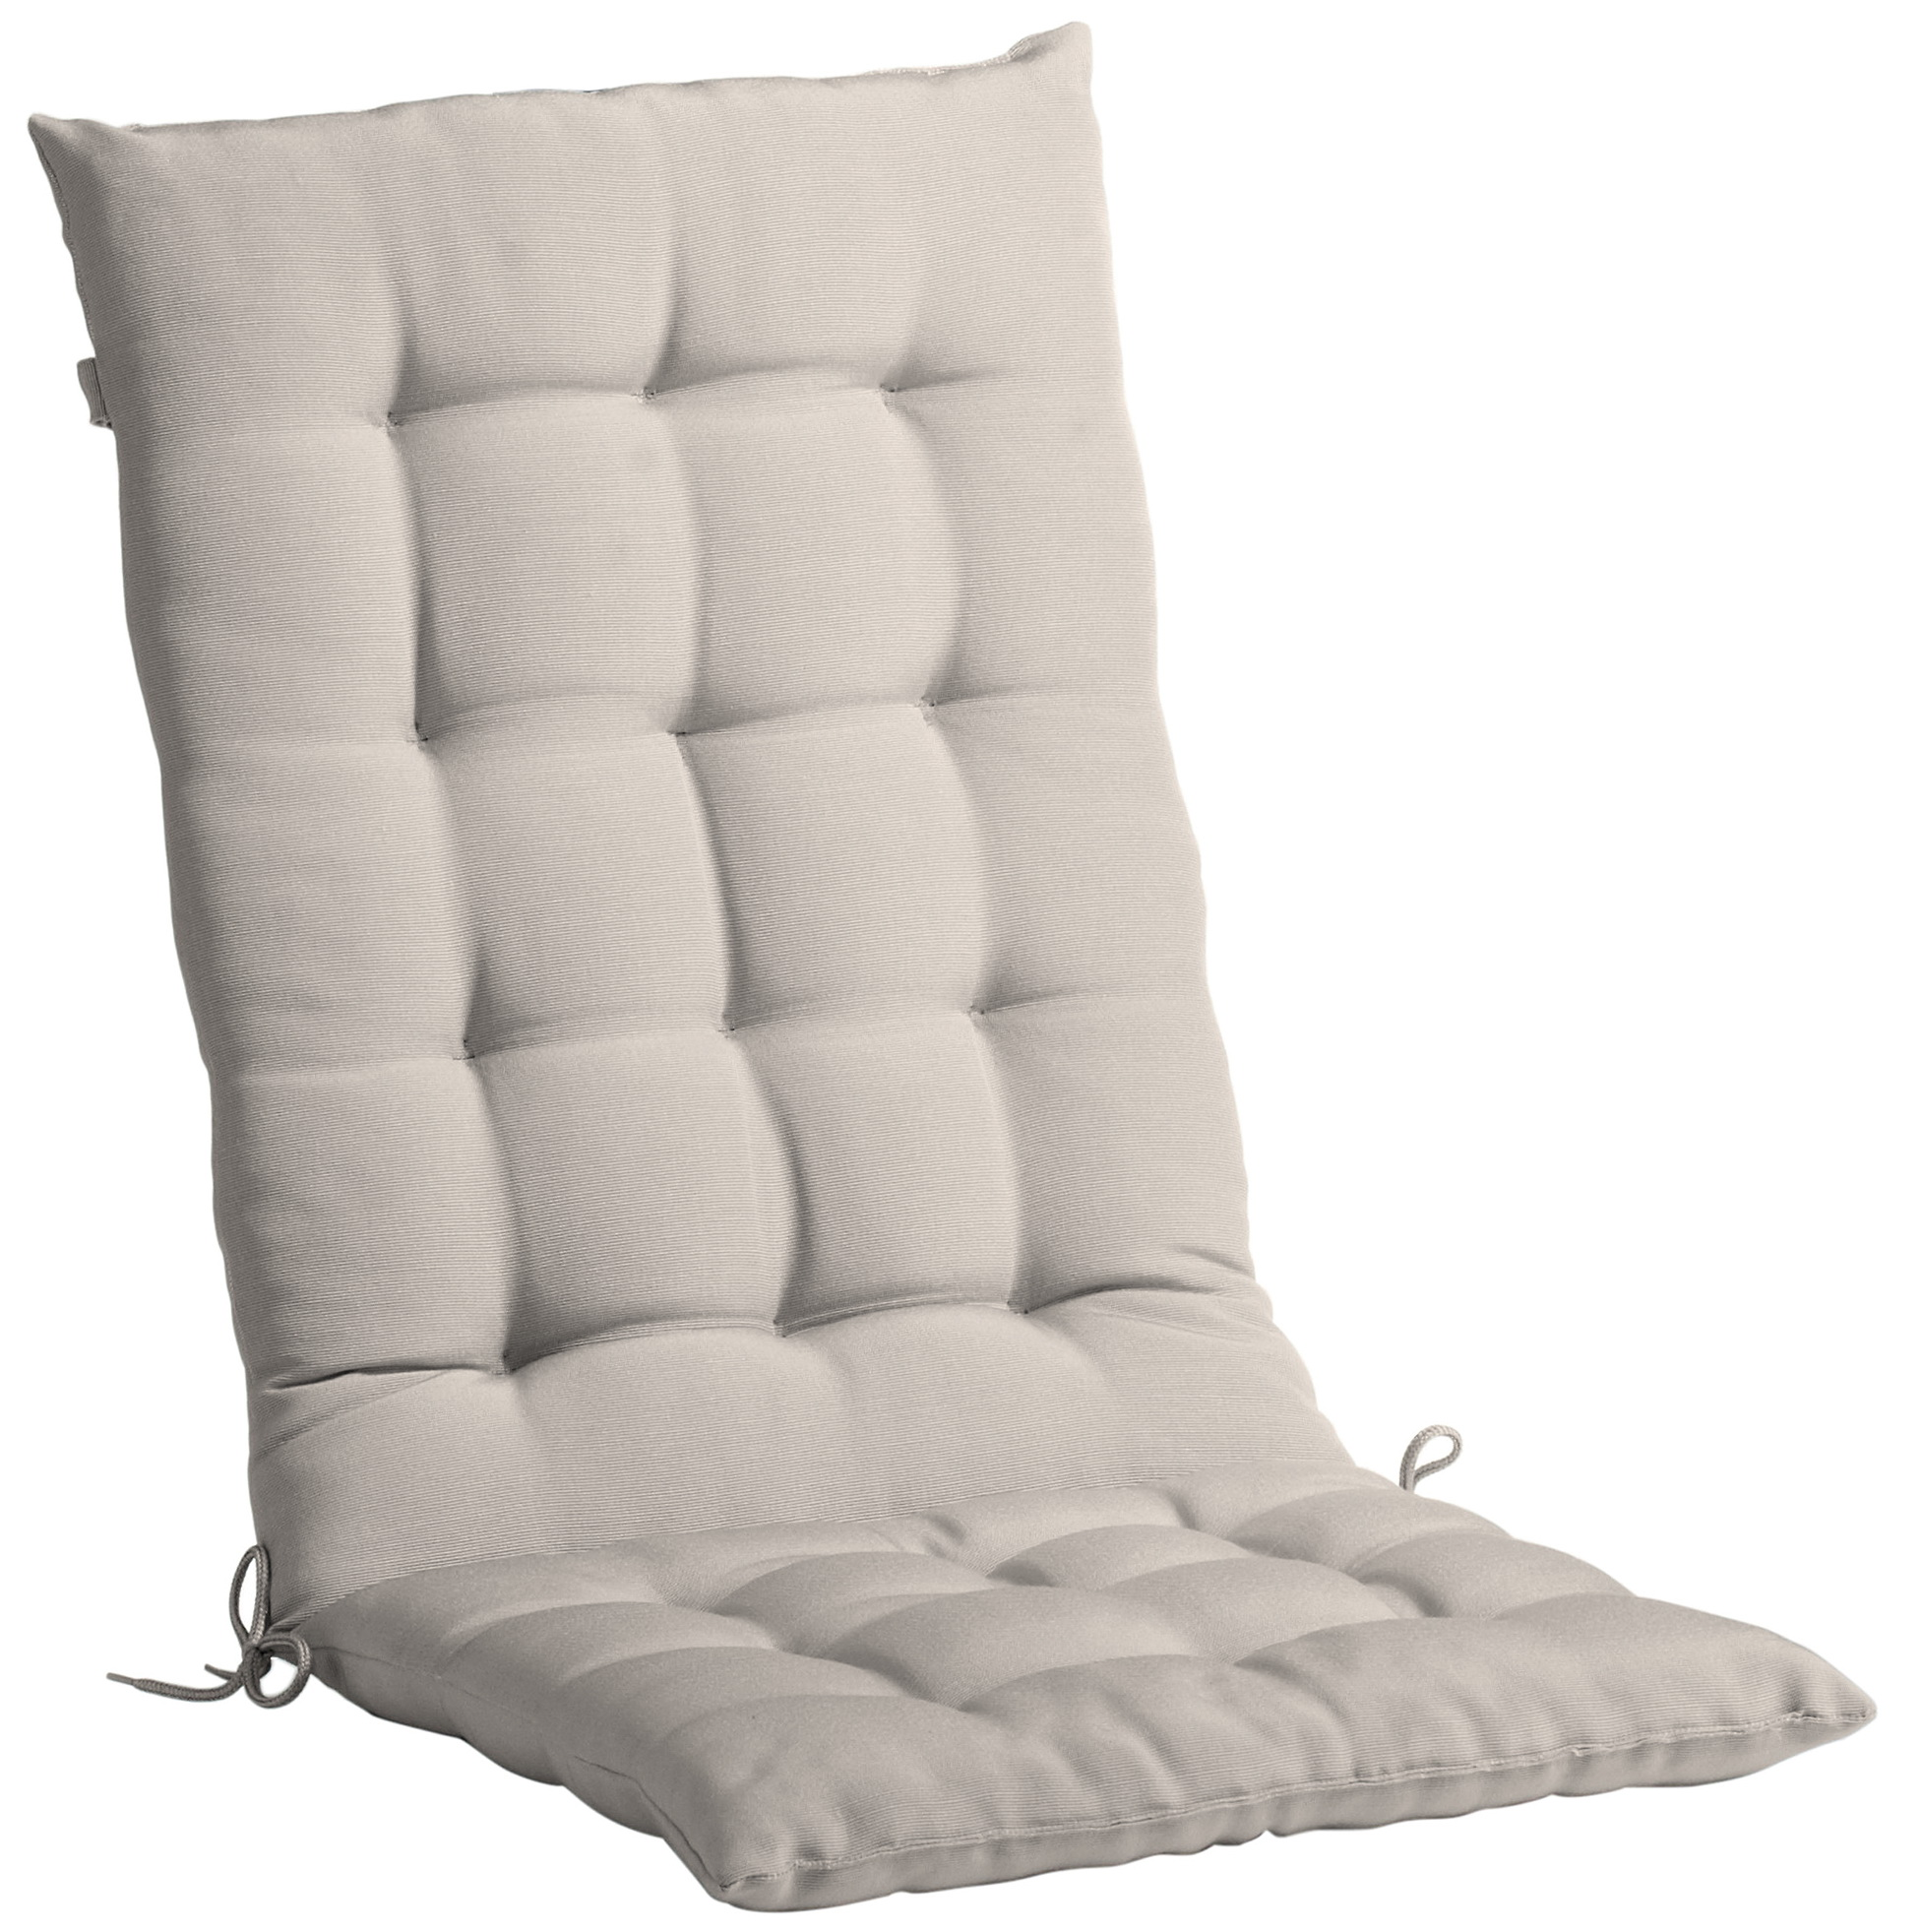 Ikea Chair Cushions Australia Home Design Ideas